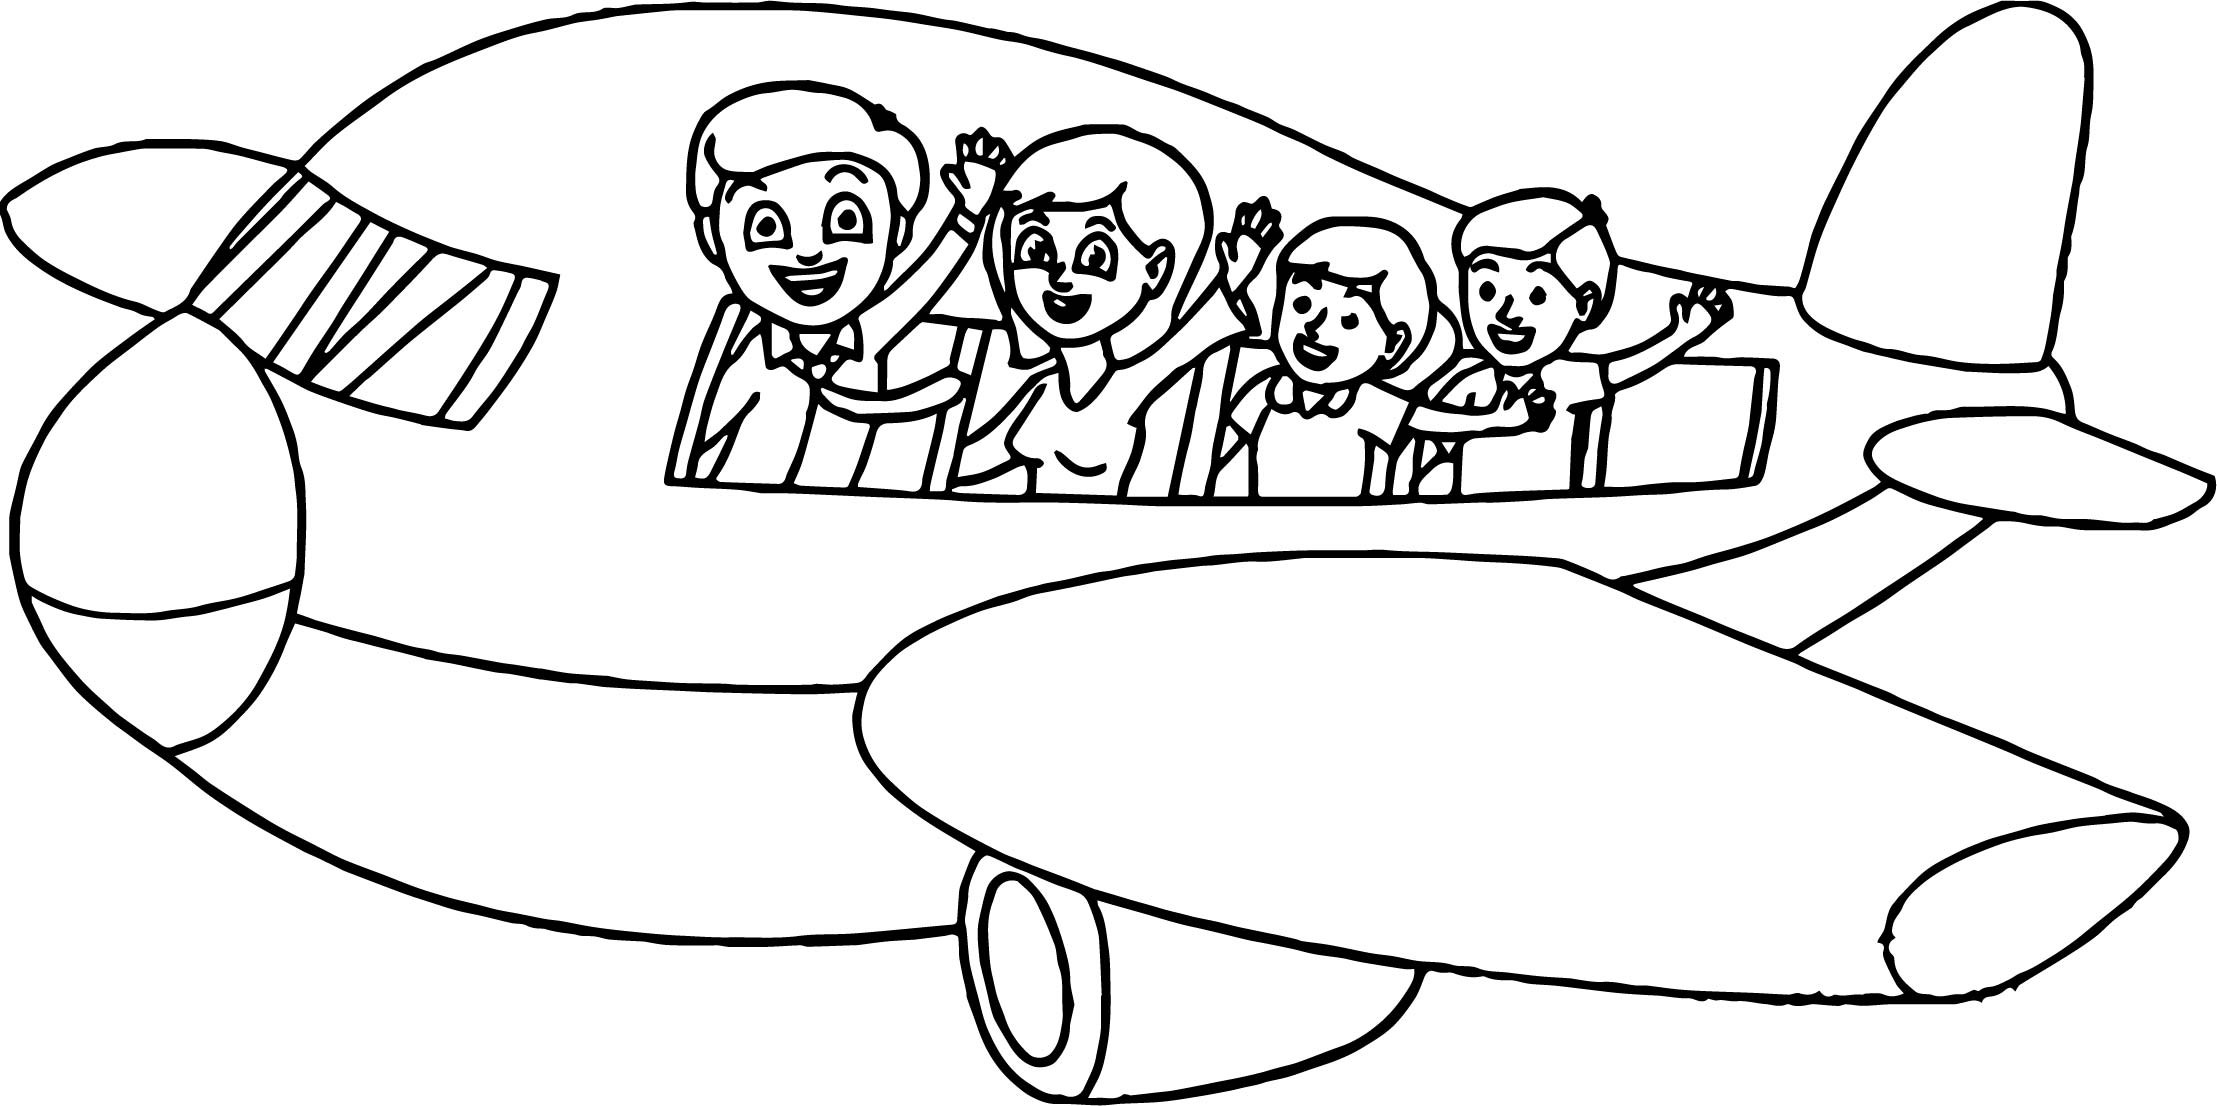 Free Coloring Pages Summer Vacation  Summer Vacation Plane Coloring Page